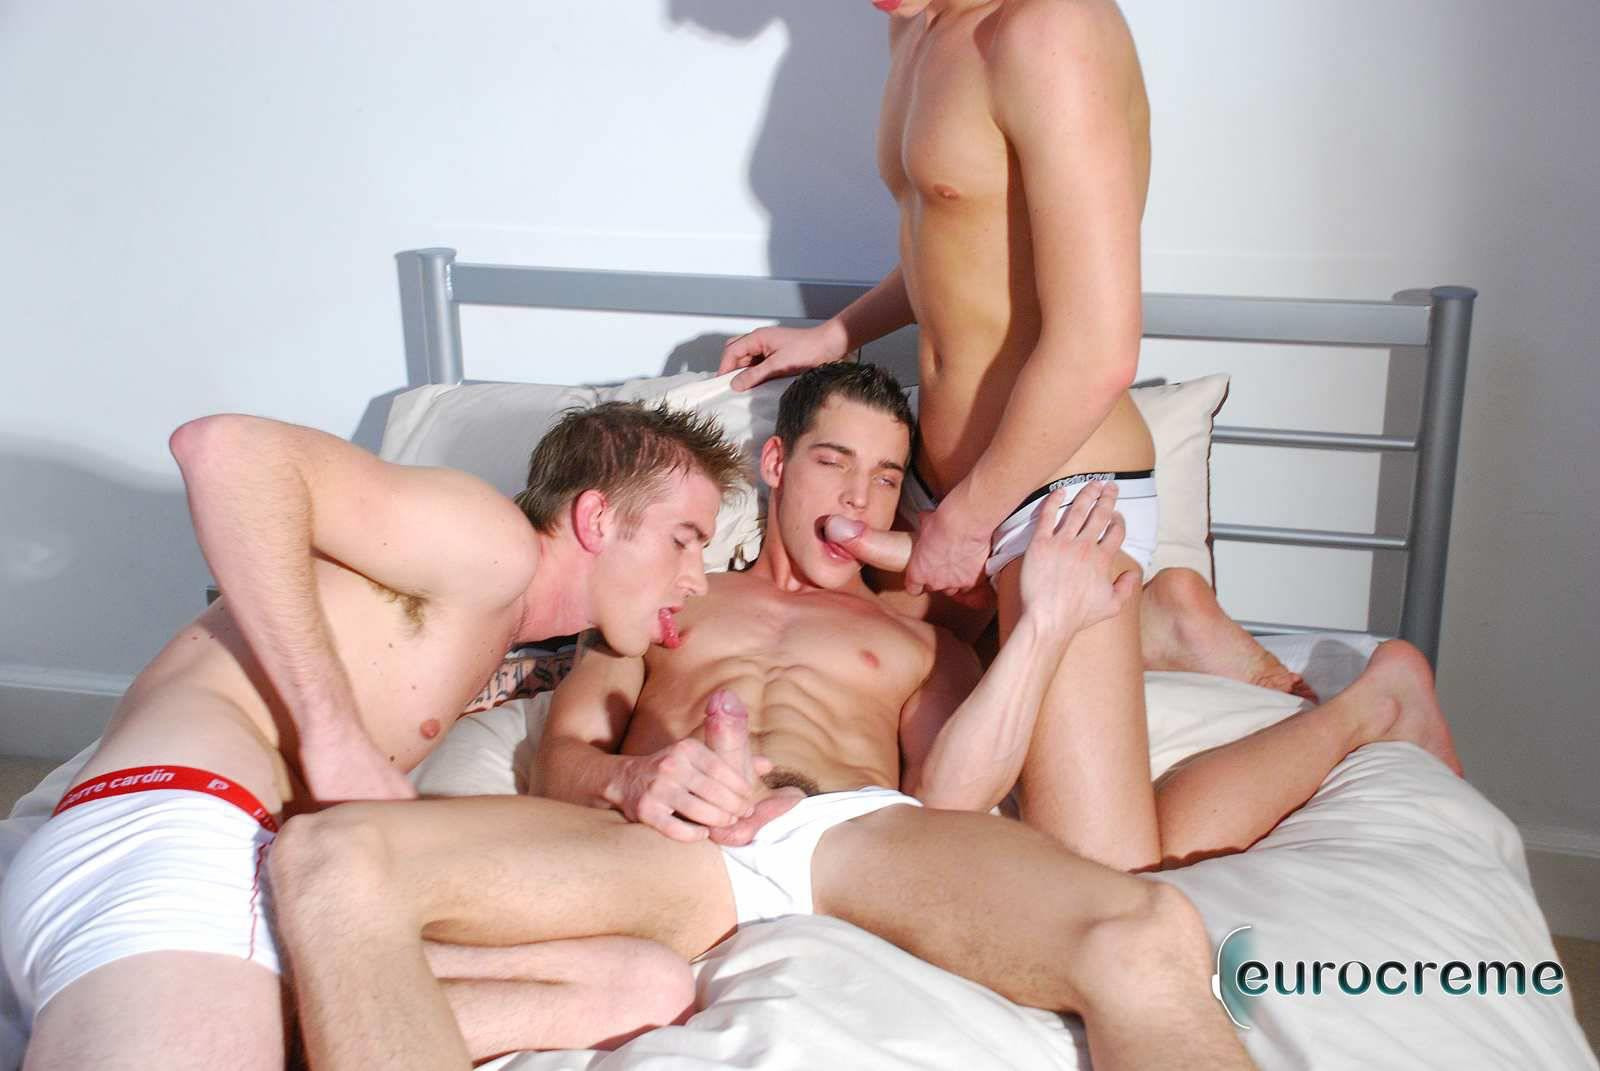 Eurocreme Matt Hughes and Alex Stevens and Philipe Delvaux Twinks Fucking Amateur Gay Porn 06 Matt Hughes Uses His 11 Inch Uncut Cock On Two Tricks